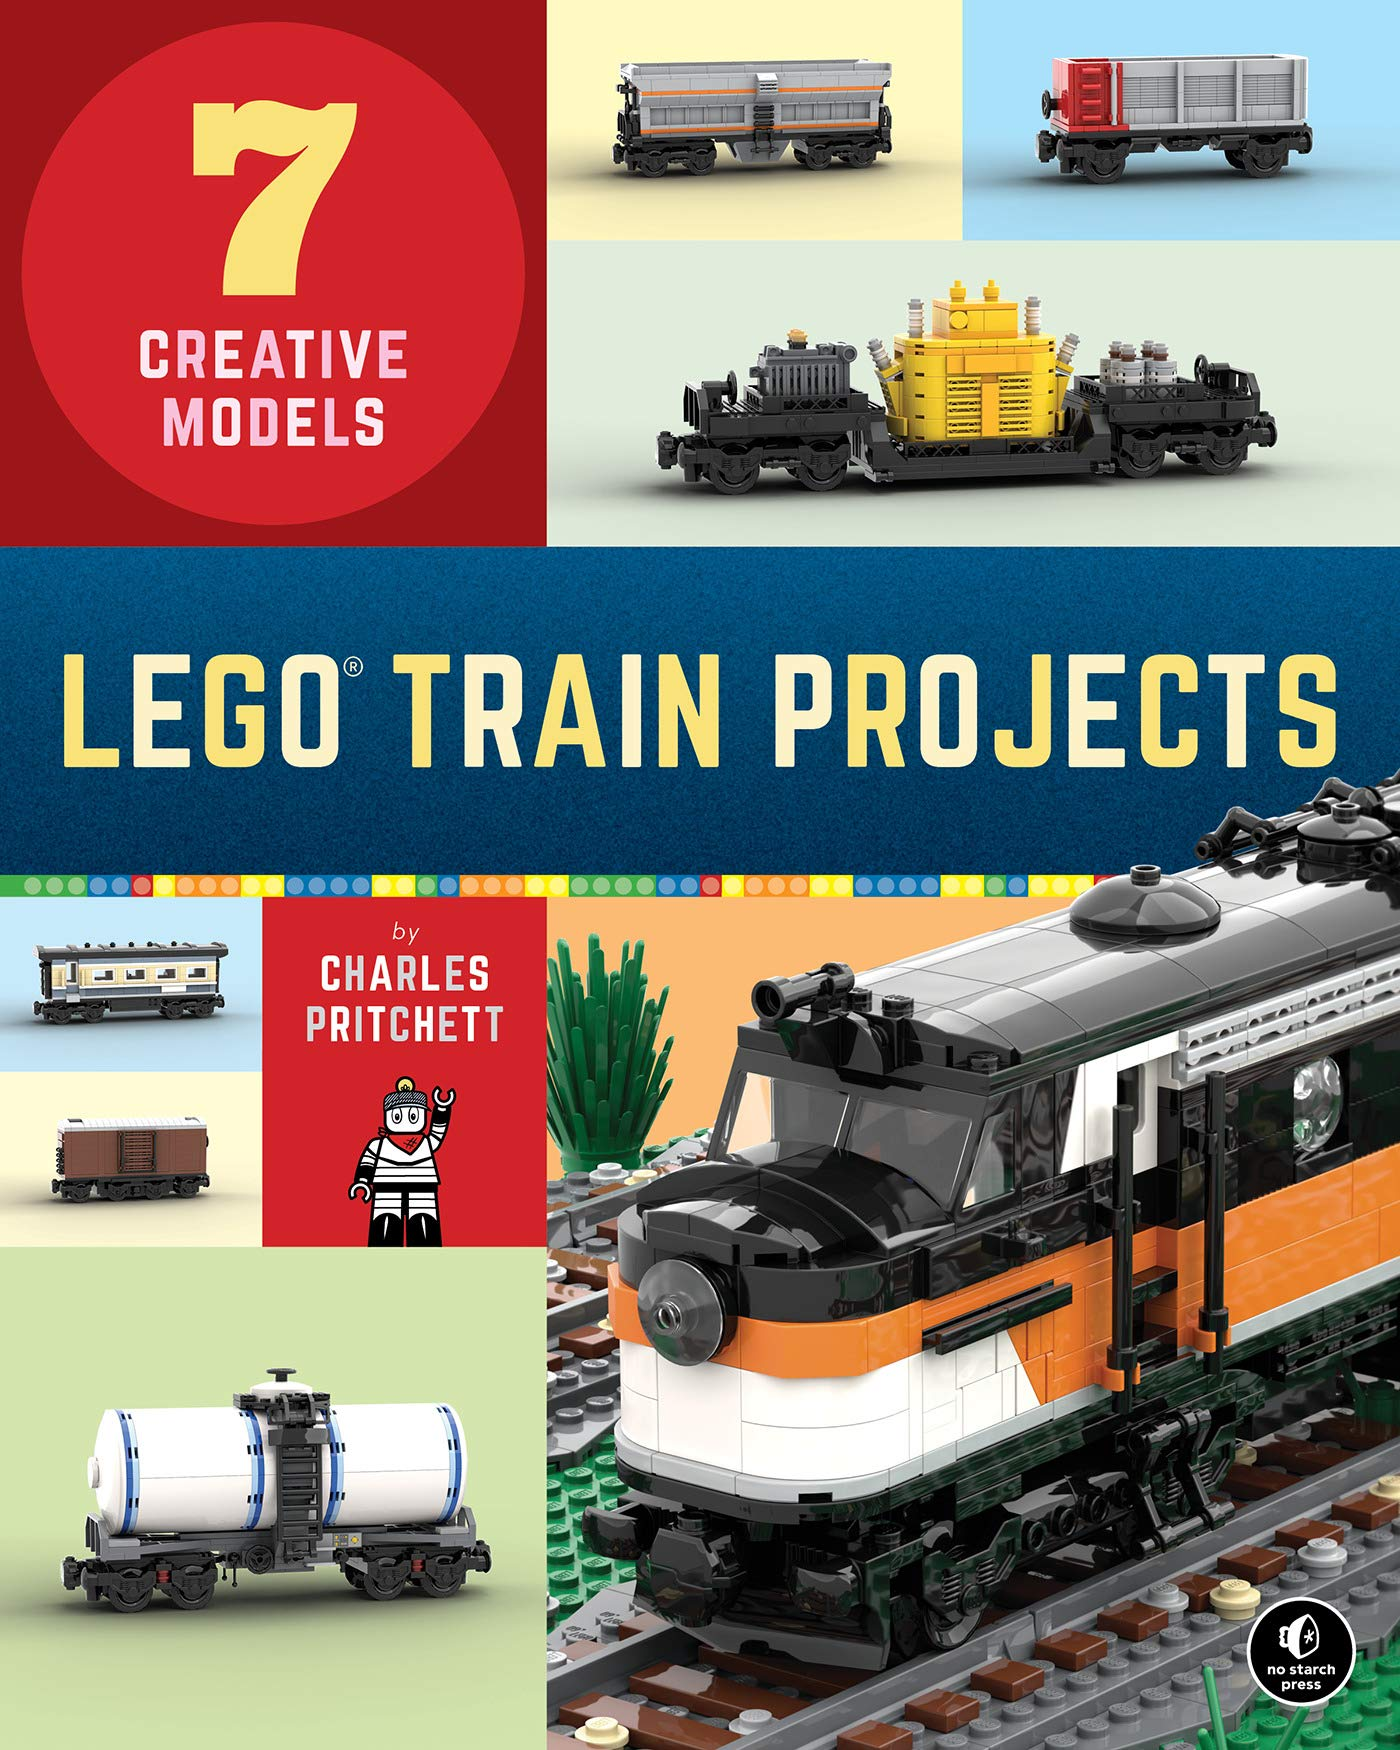 LEGO Train Projects: 7 Creative Models por Charles Pritchett